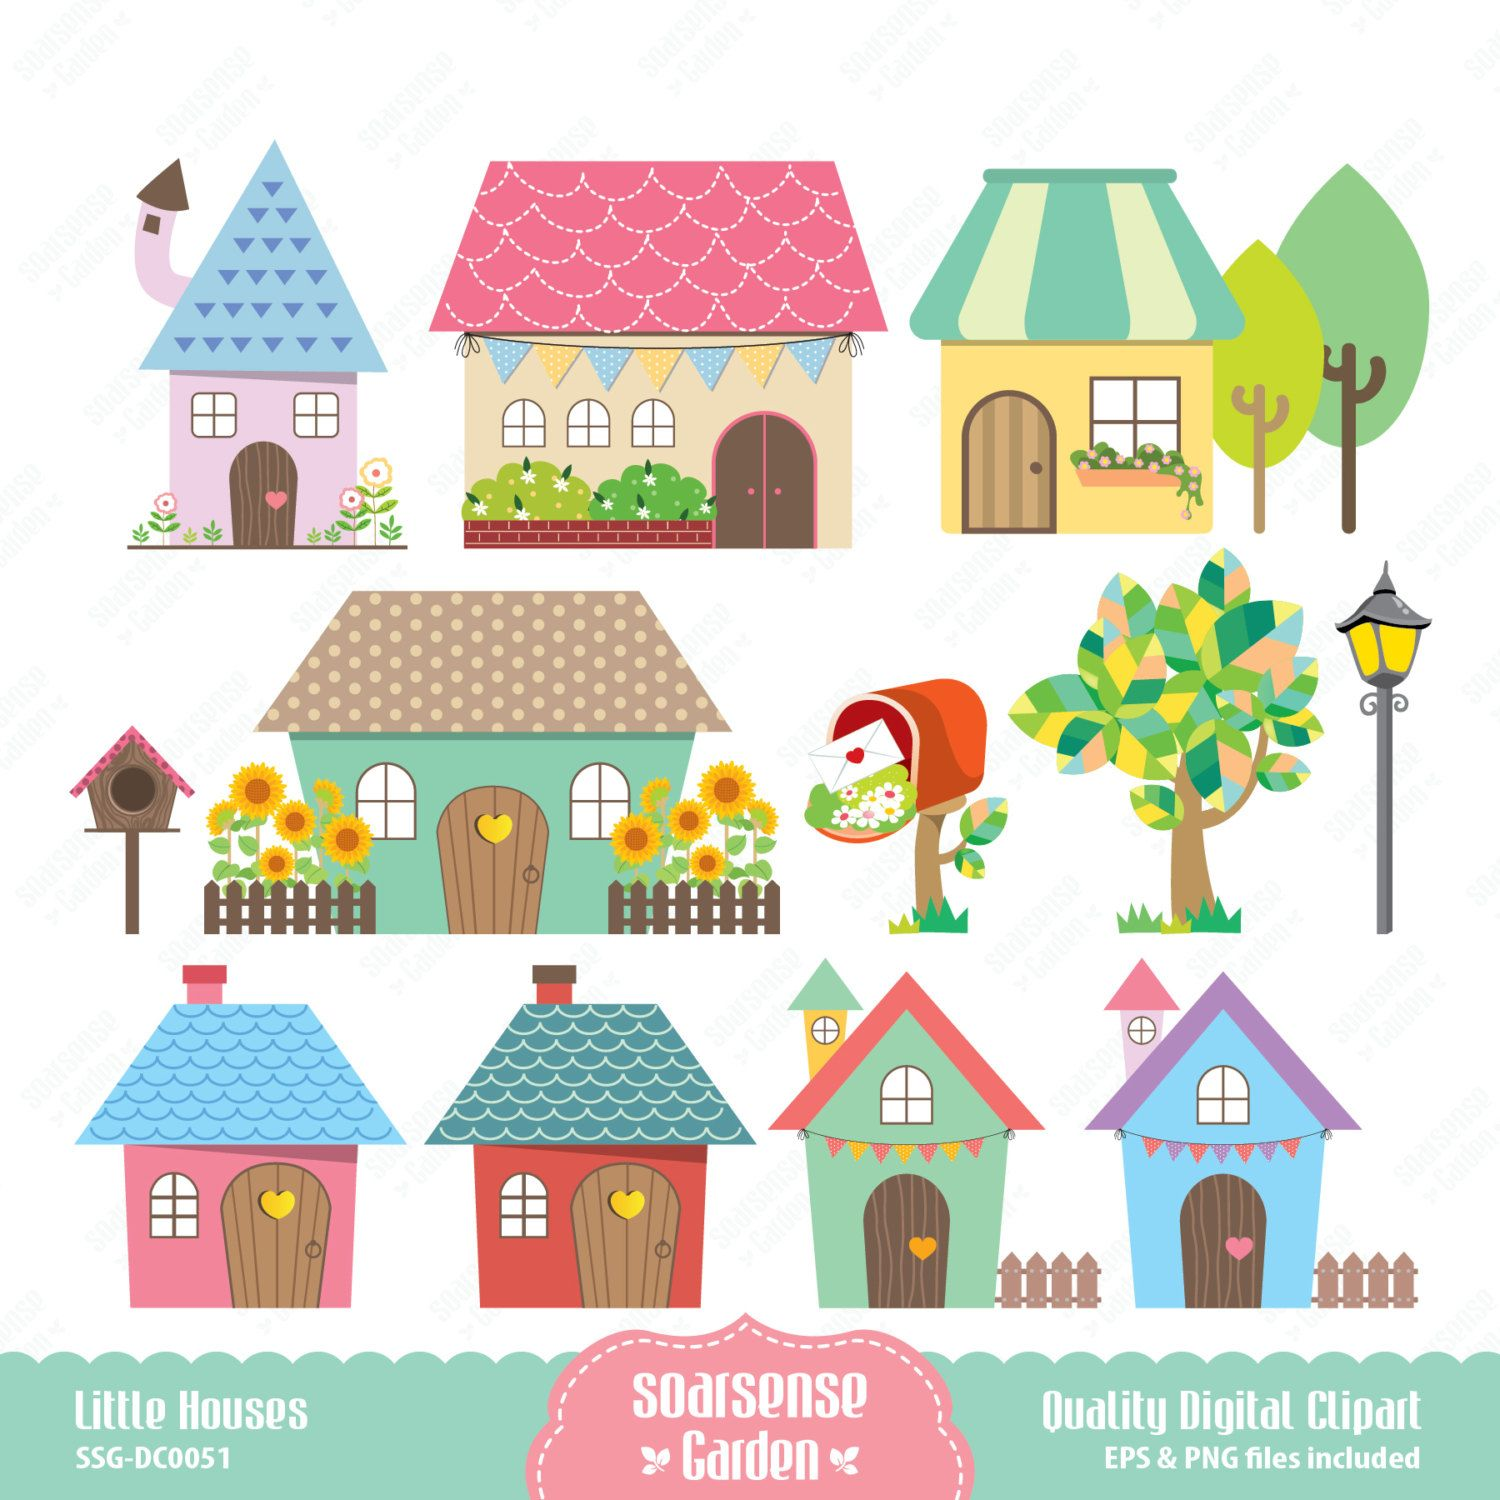 Whimsical houses clipart images clip art black and white stock cute home illustration - Google Search | Houses Clipart ... clip art black and white stock